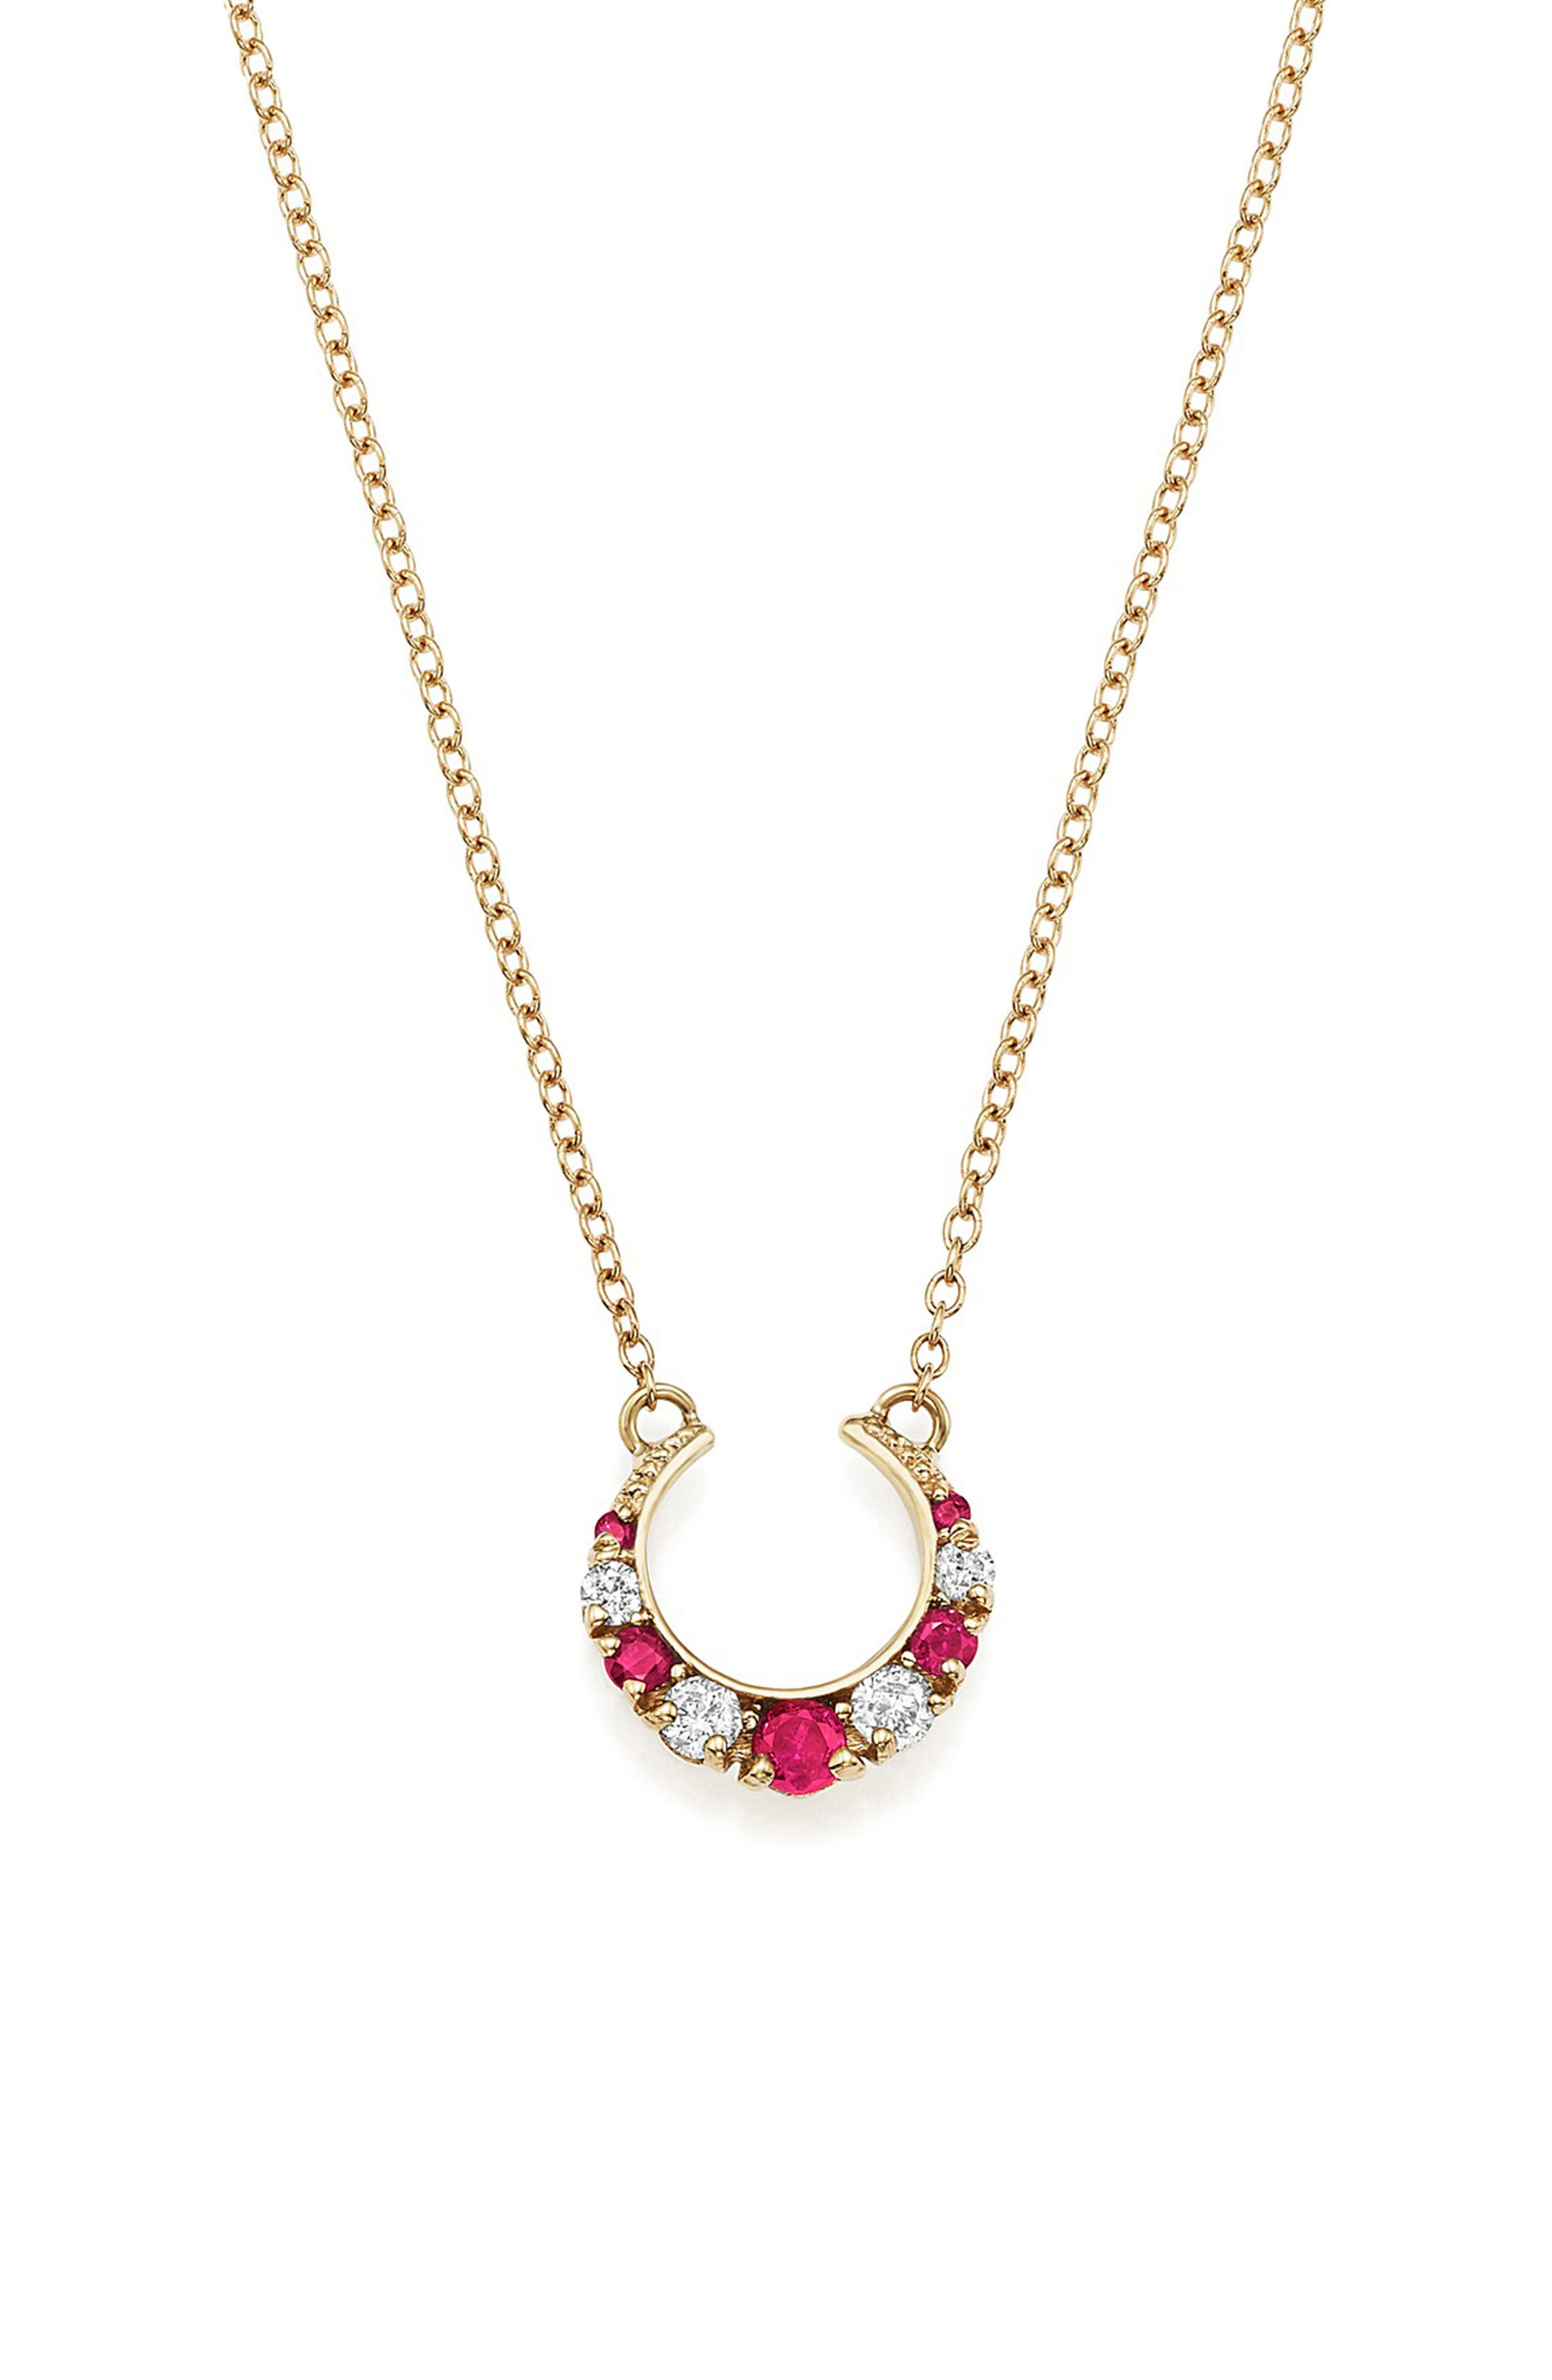 ICONERY X Stone Fox Gem Pendant Necklace in Rose Gold